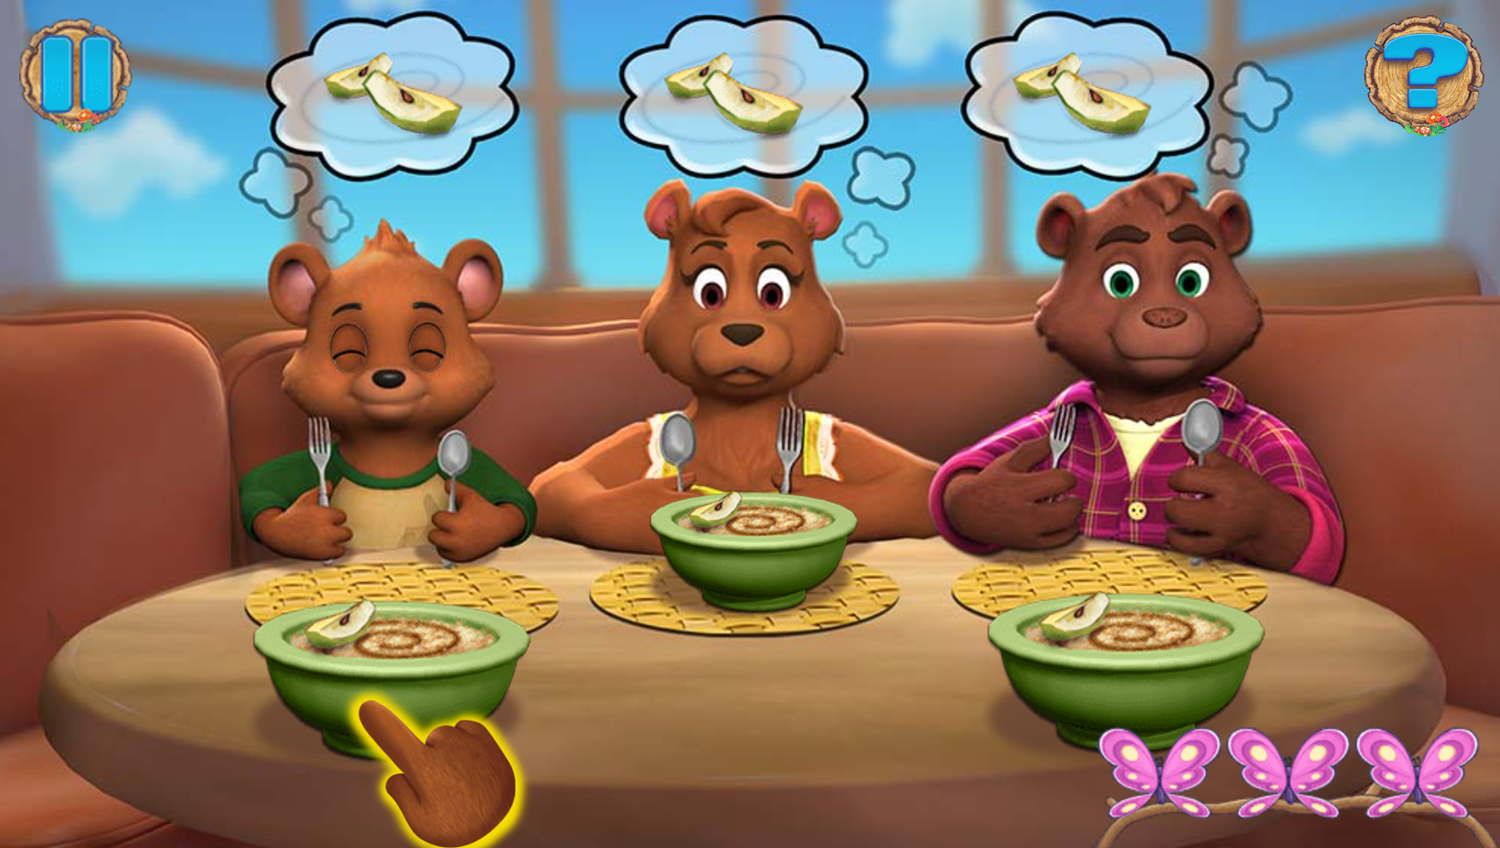 Goldie and Bear Fairy Tale Forest Adventures Game Giving Food Play Screenshot.